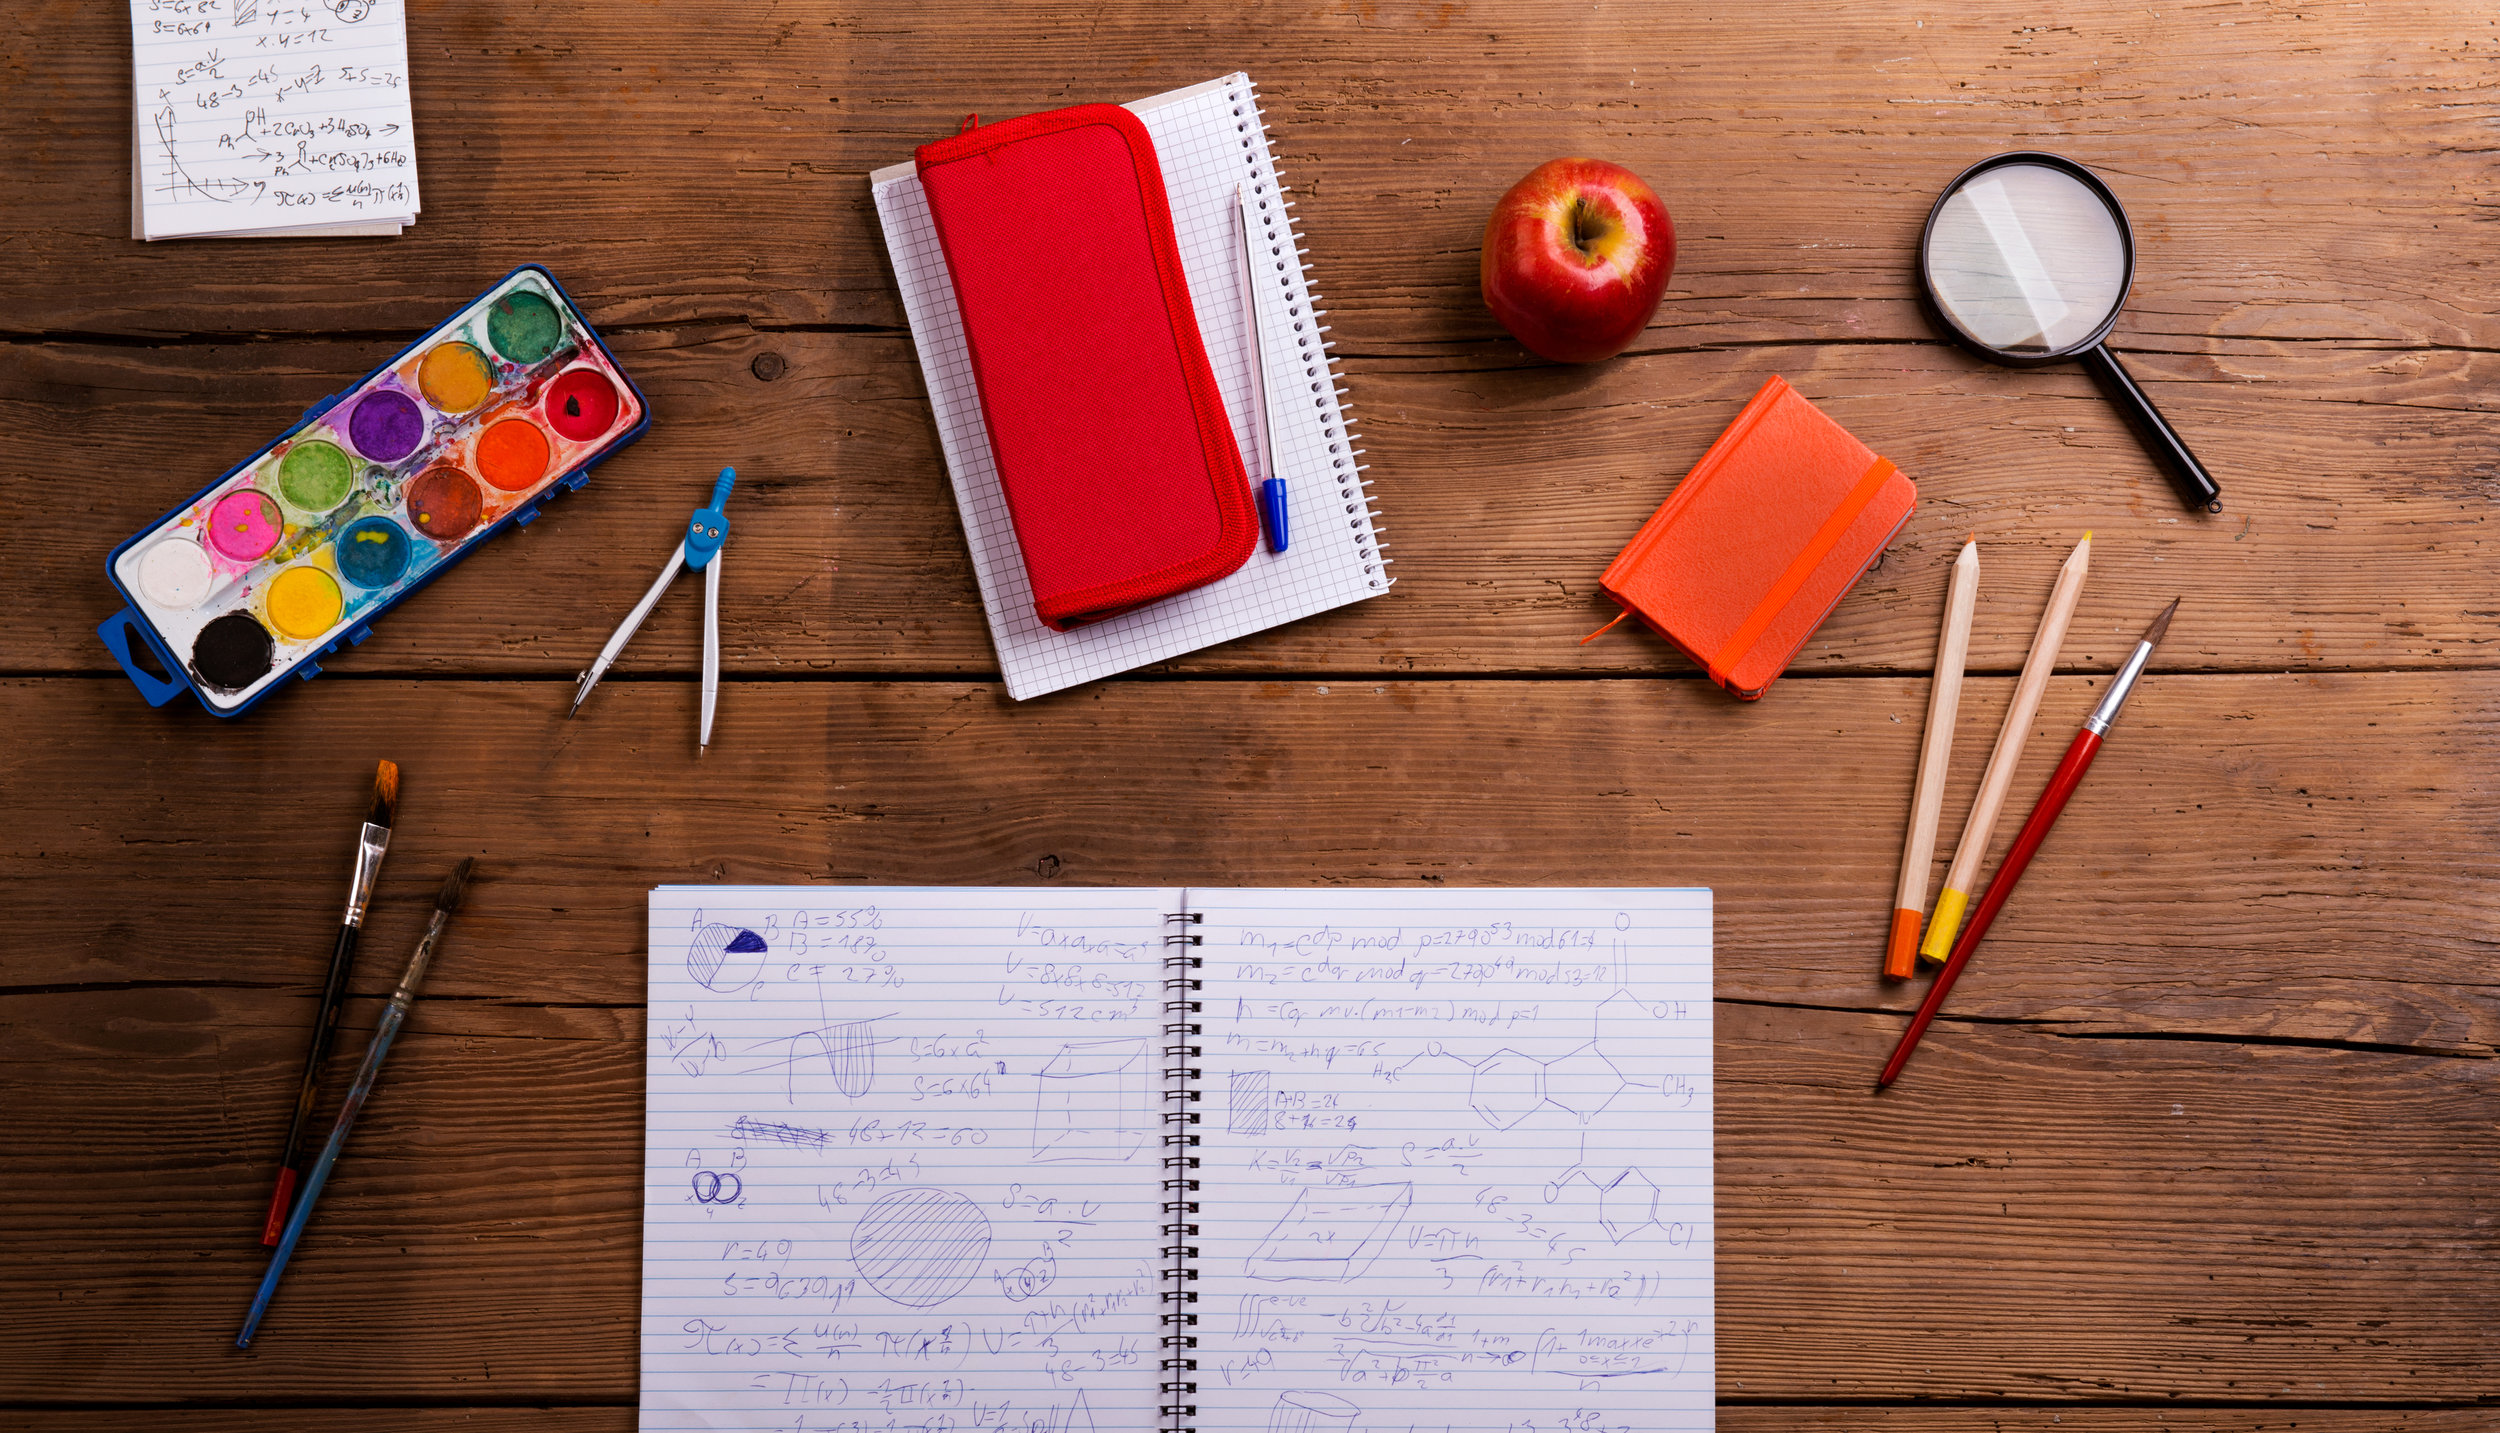 graphicstock-various-school-and-art-supplies-laid-on-desk-flat-lay-notebook-with-math-symbols-and-formulas-studio-shot-on-wooden-background_H_FV9MrGW.jpg